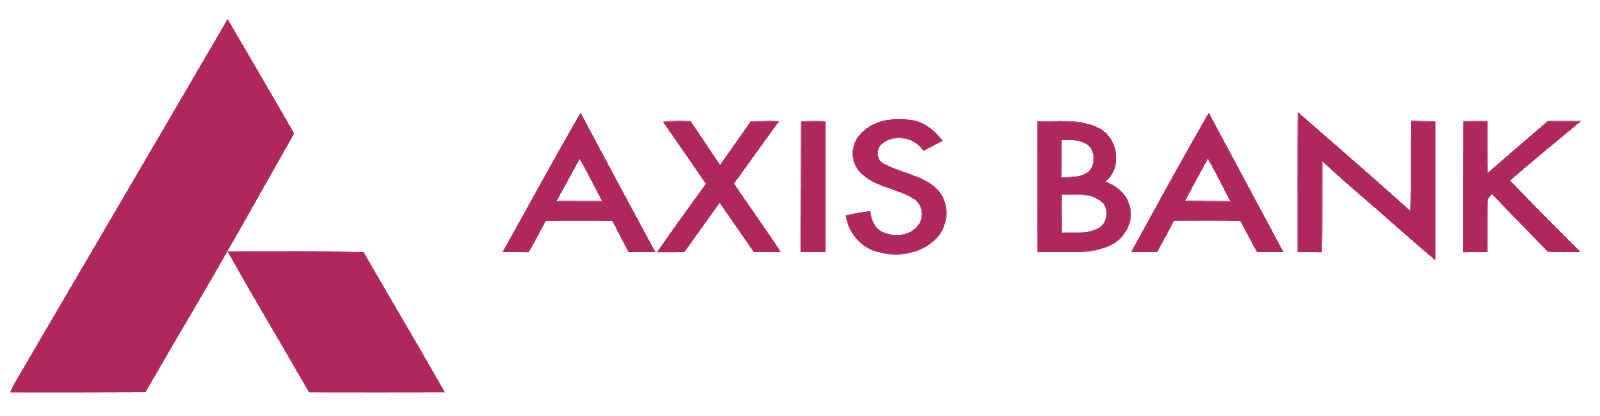 Axis Bank Missed Call Balance enquiry Number or SMS, Toll